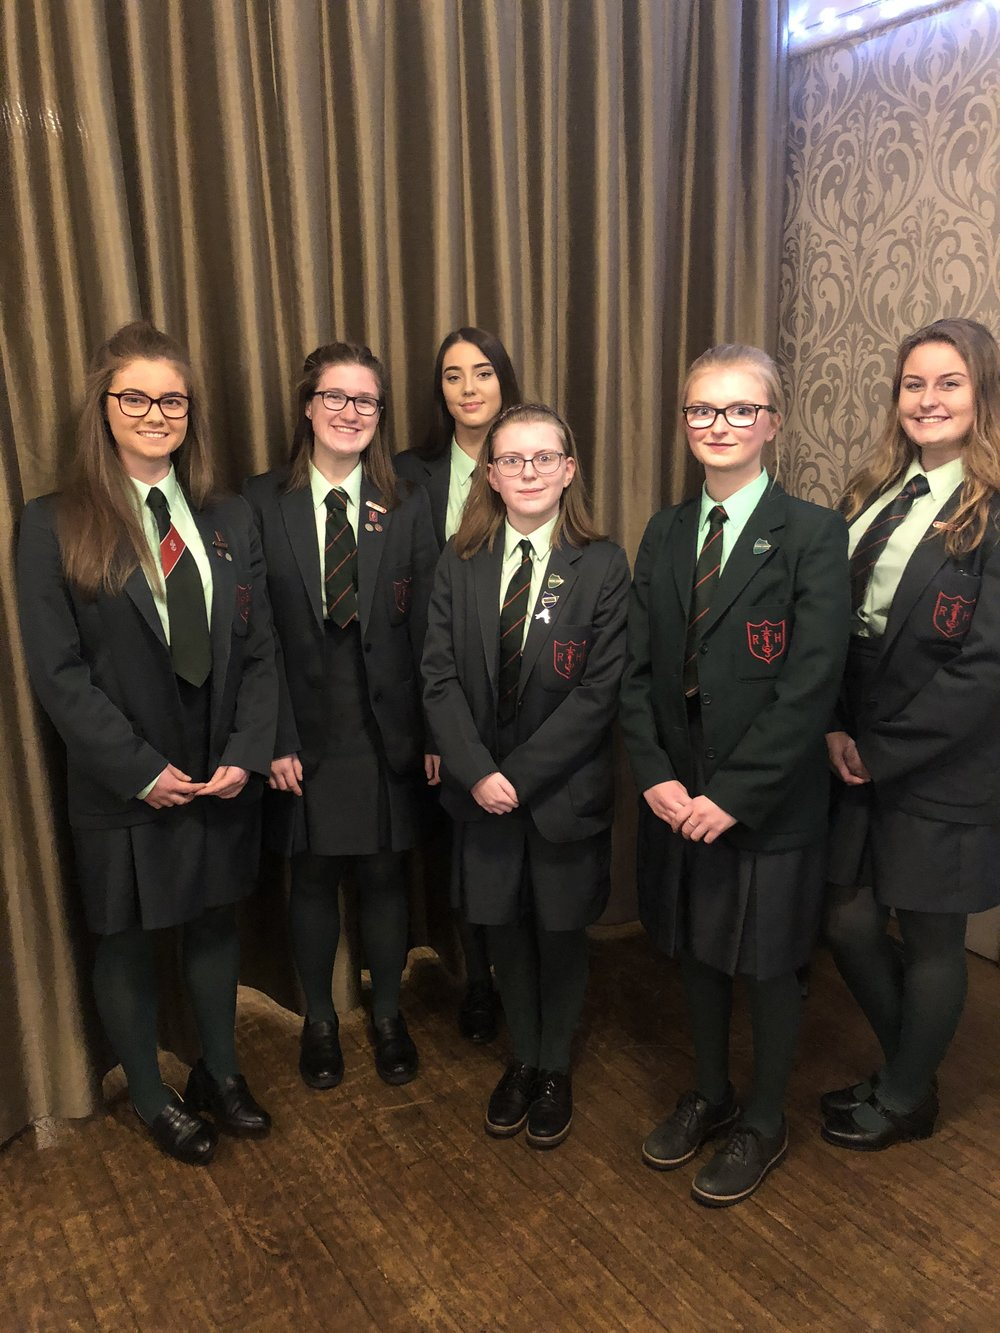 Debating Society - Pupils from Middle and Senior school participating in the Soroptomist Public Speaking competition in October in Bangor Golf Club.